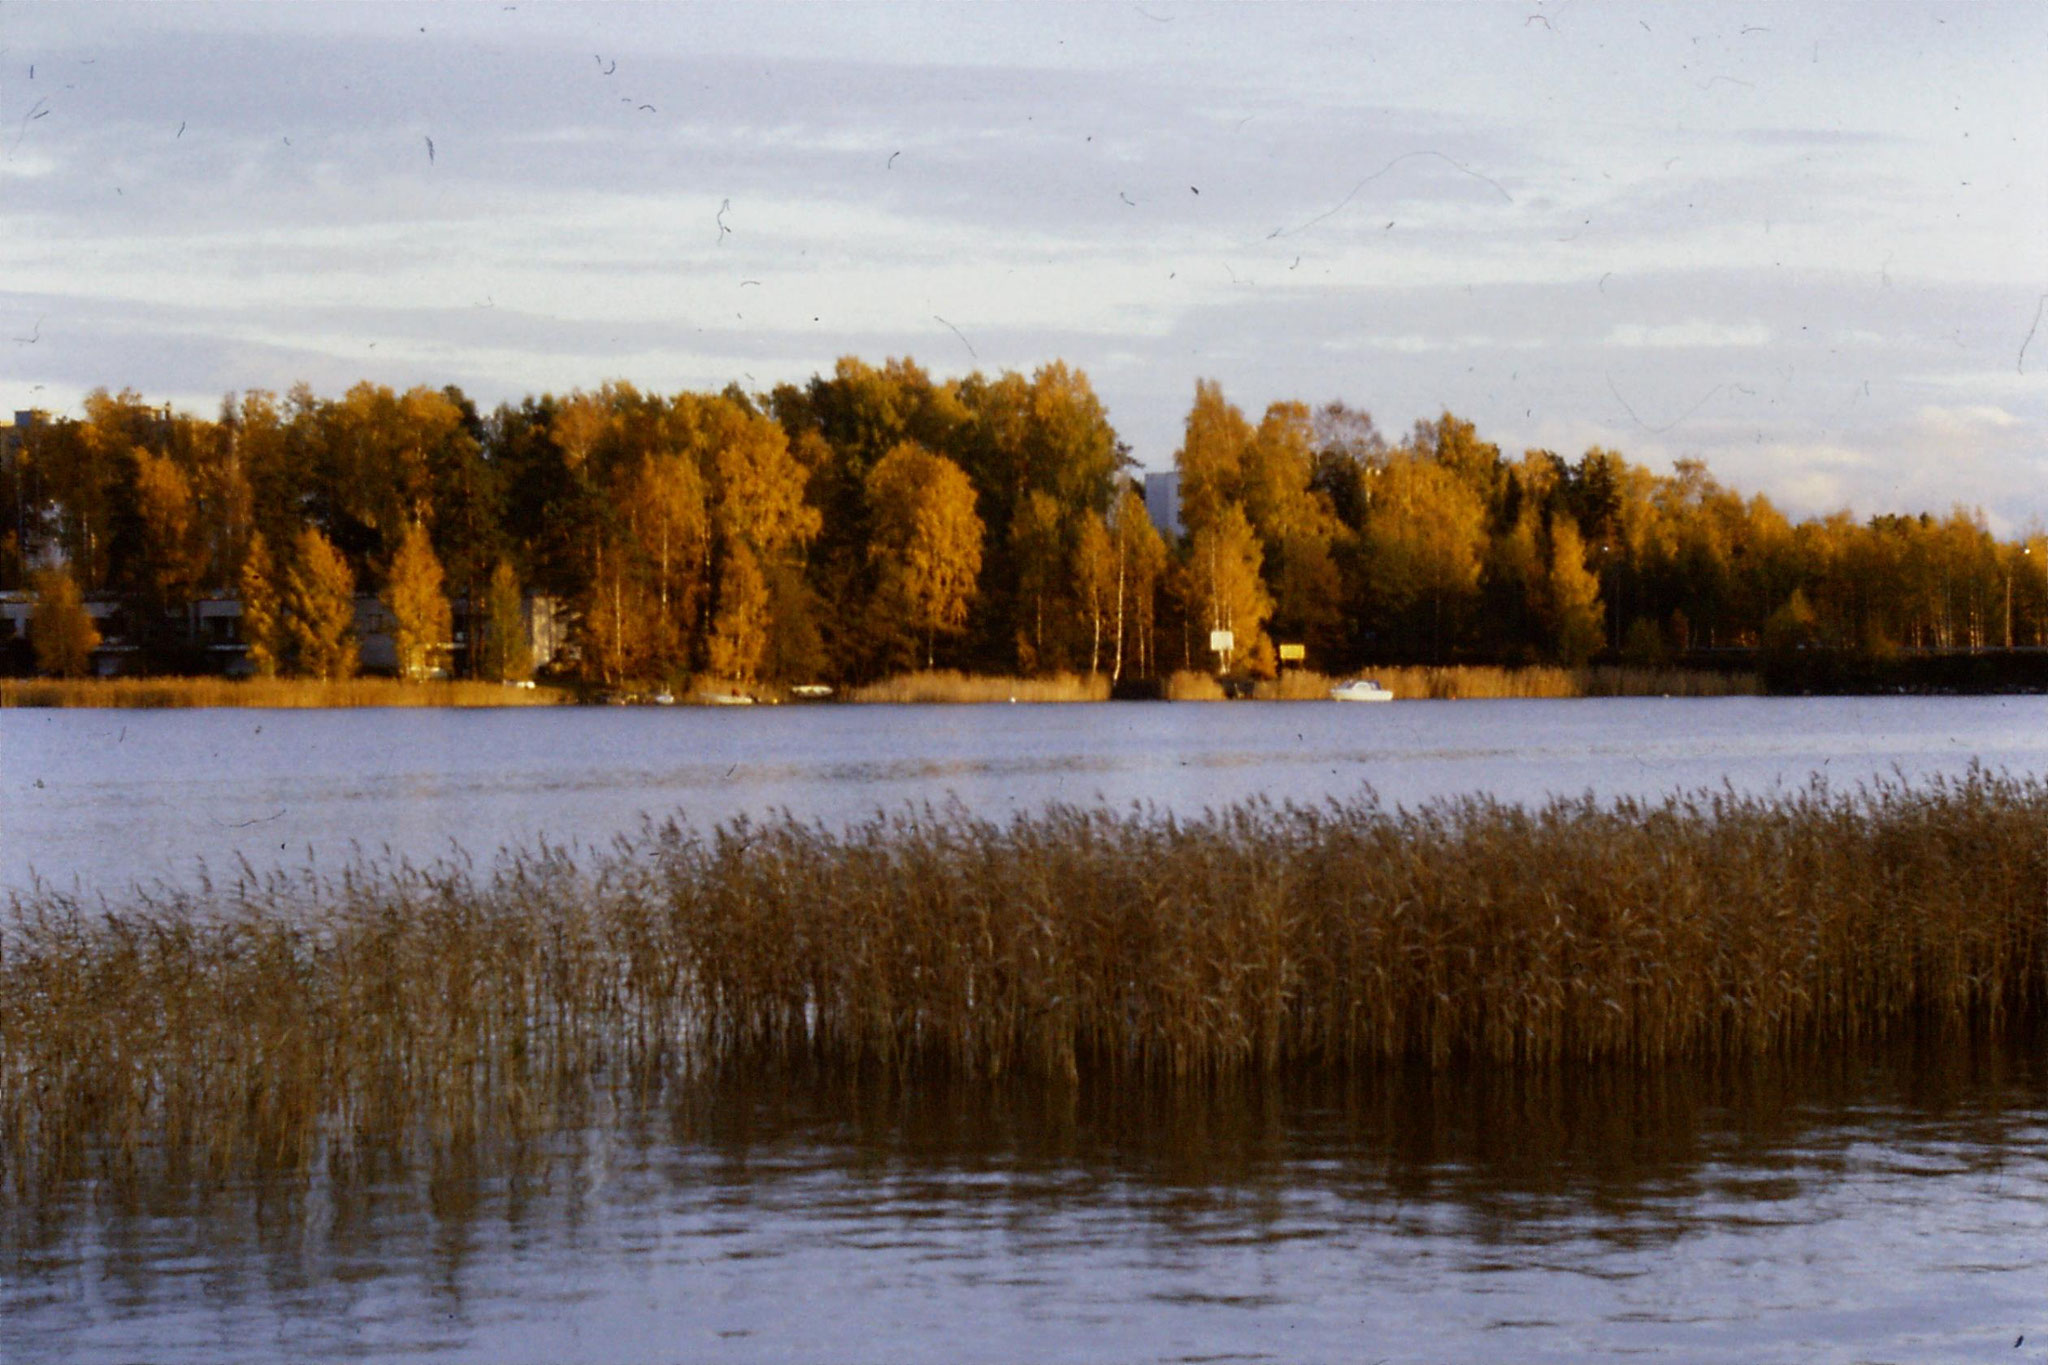 11/10/1988: 13: view across bay at Otaniemi